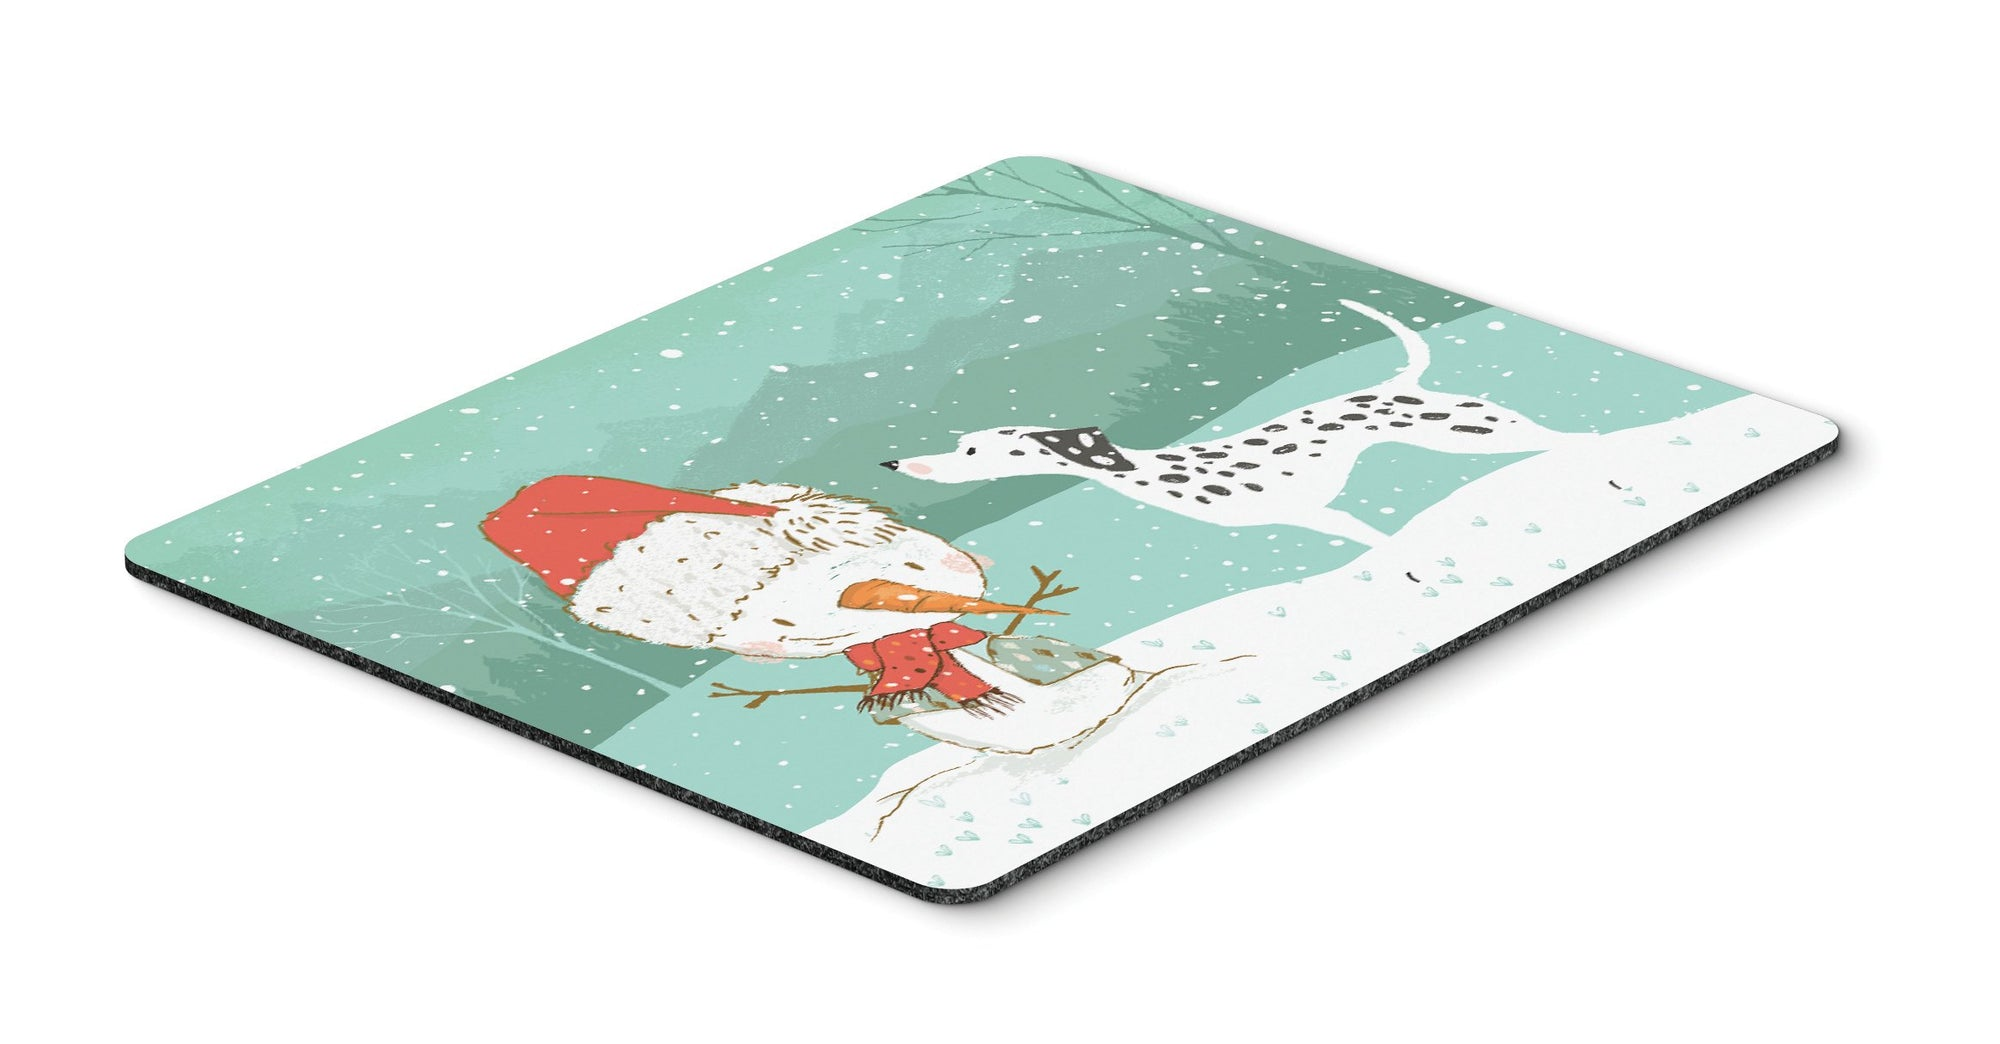 Dalmatian and Snowman Christmas Mouse Pad, Hot Pad or Trivet CK2037MP by Caroline's Treasures